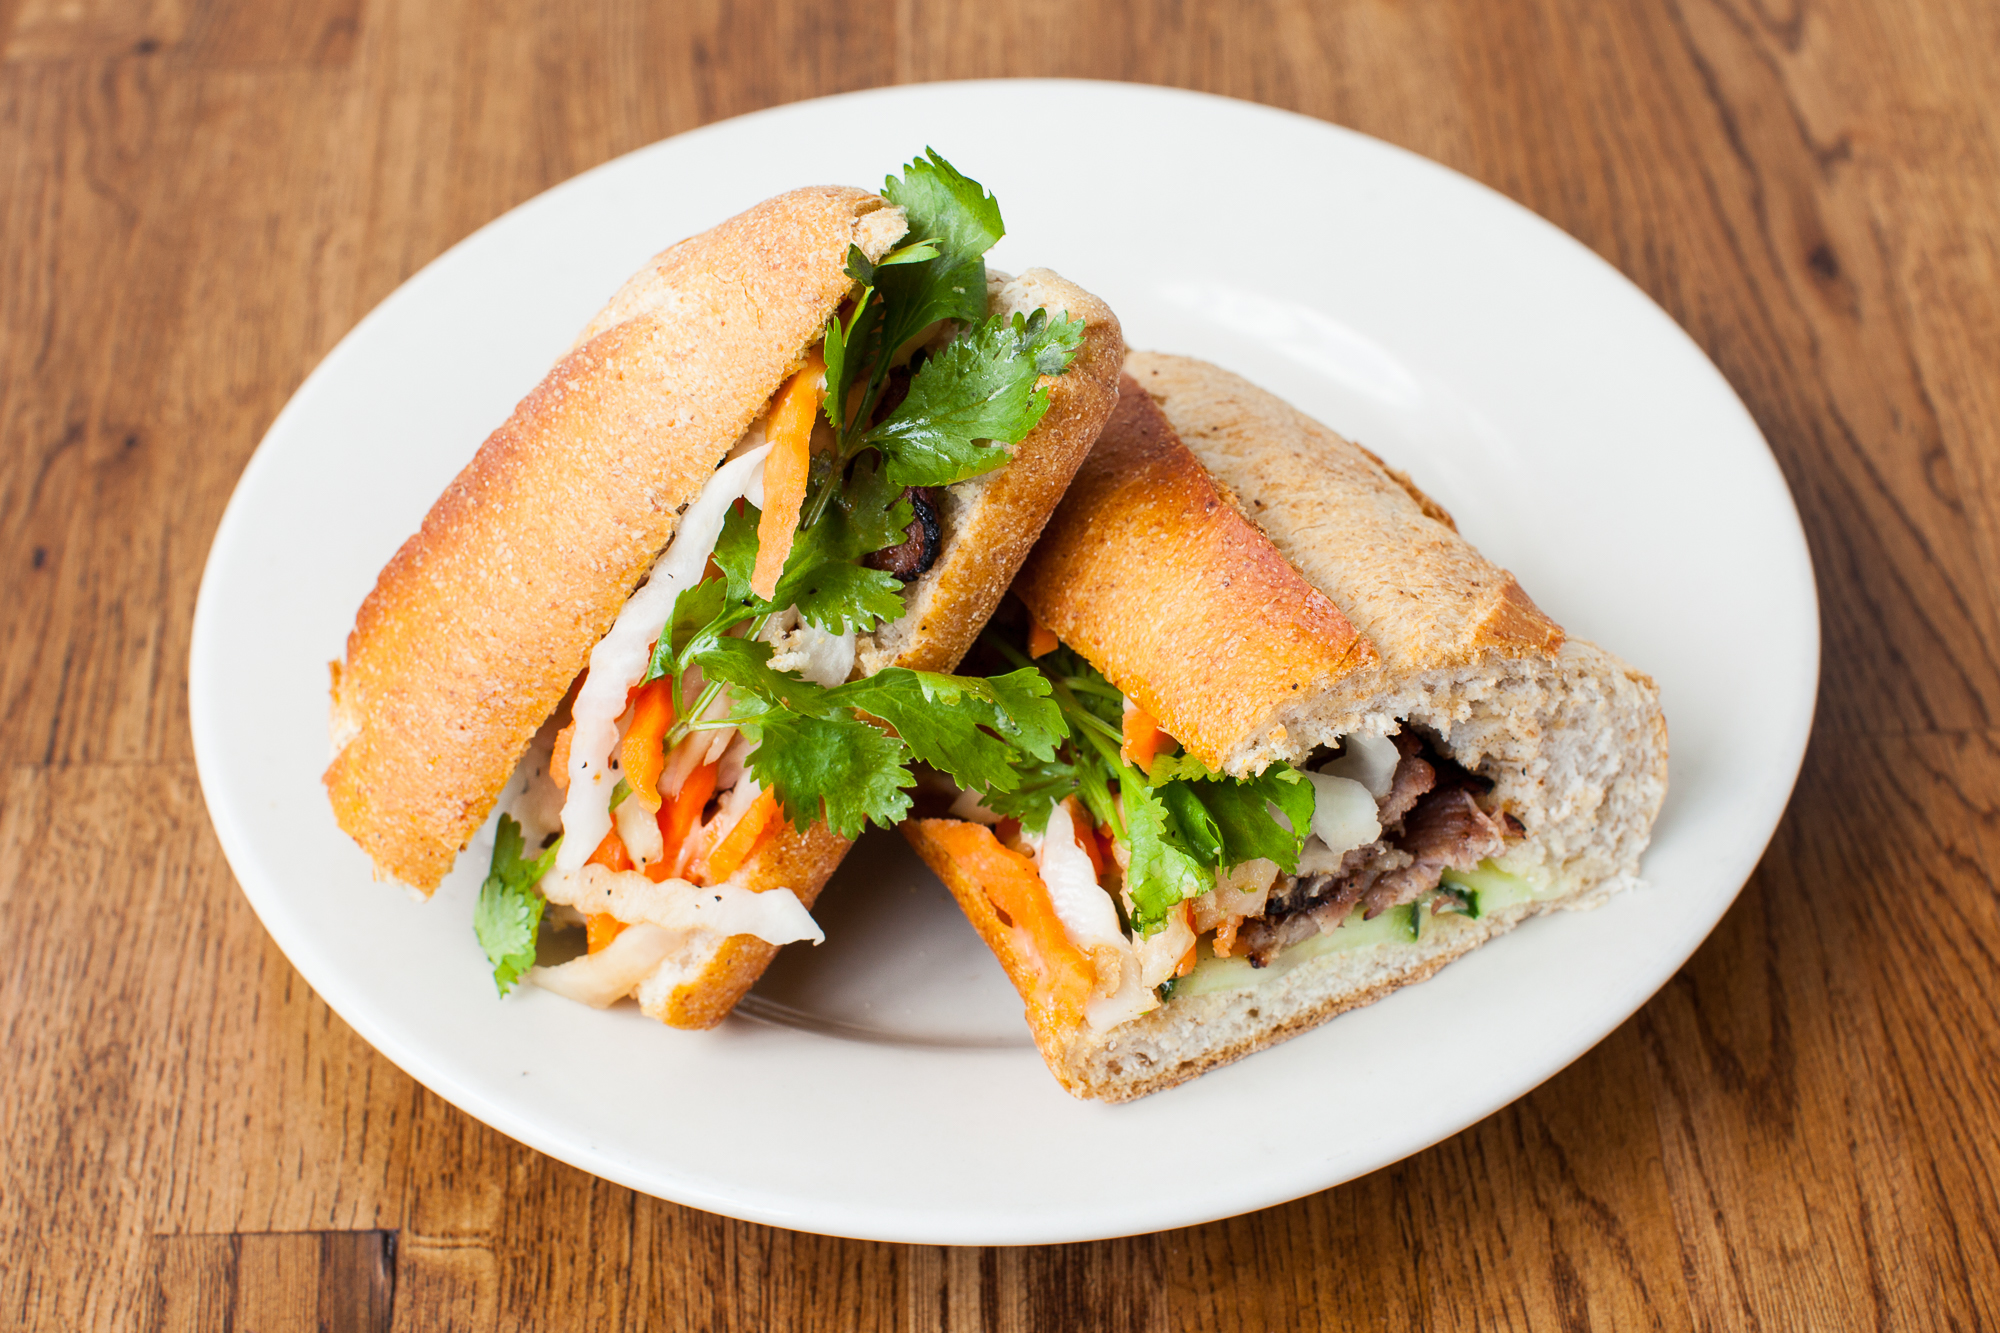 The best bánh mì restaurants in NYC